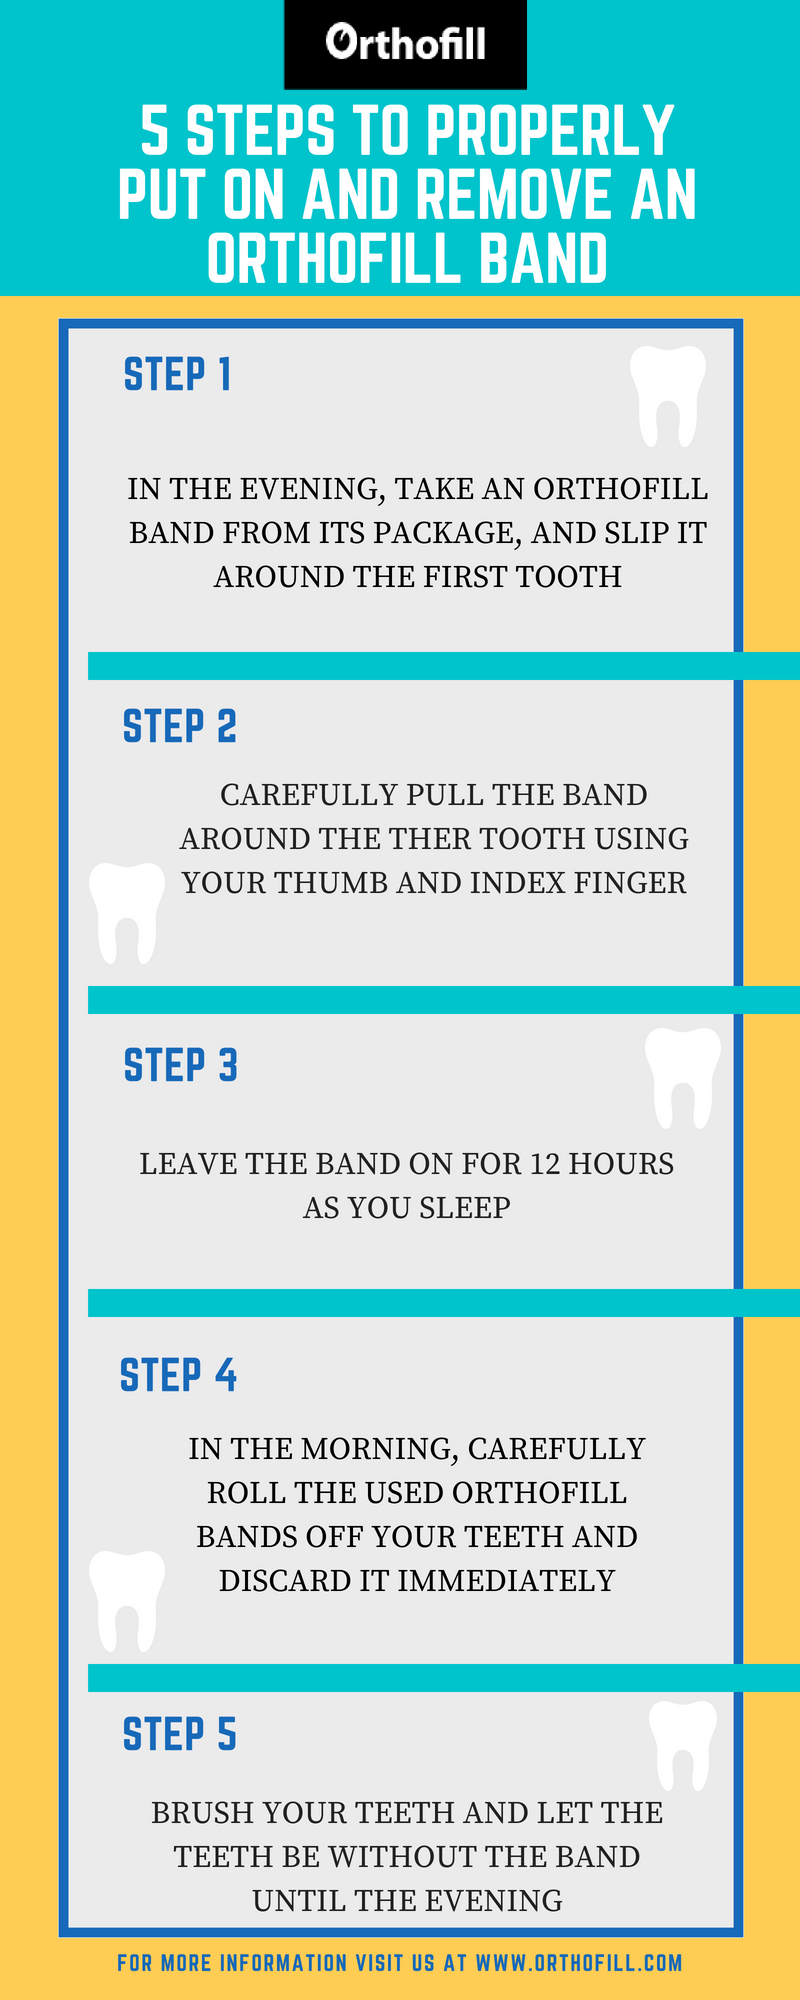 5 Steps to Properly Put on and remove an Orthofill Band